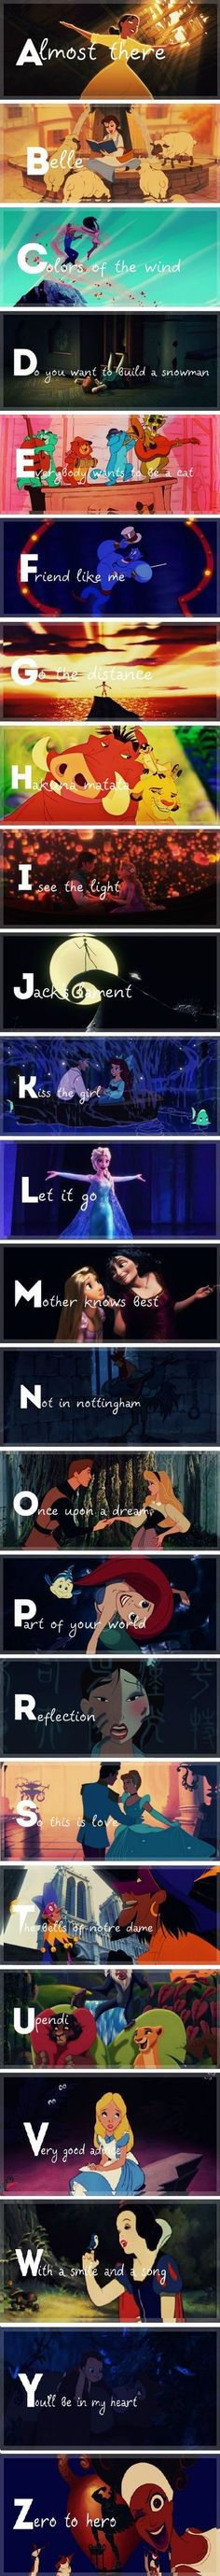 The alphabet, the Disney way. THERES NO X or Q though